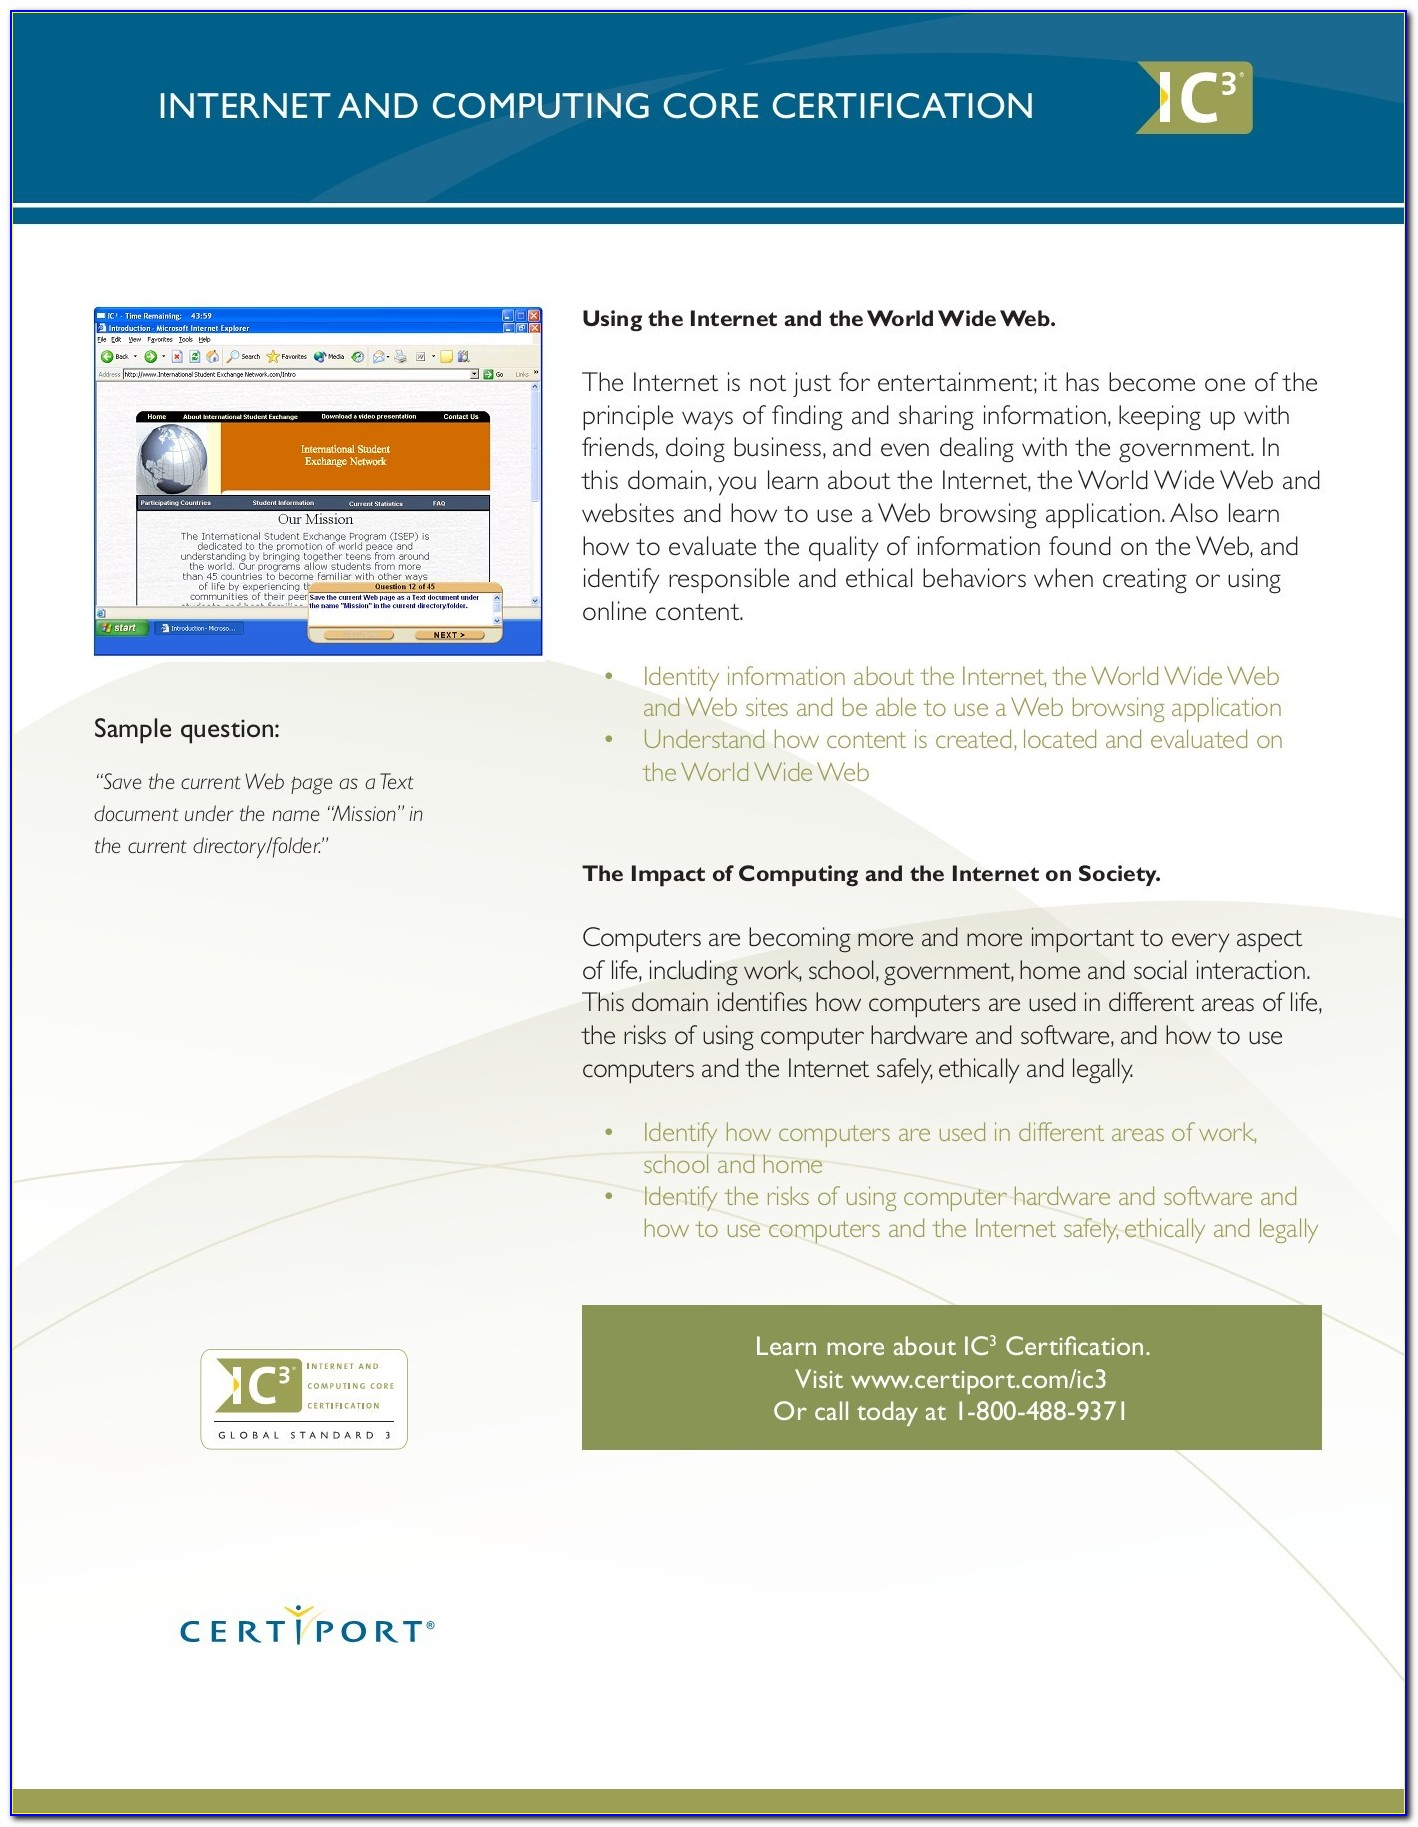 Ic3 Certification Study Guide Free Download